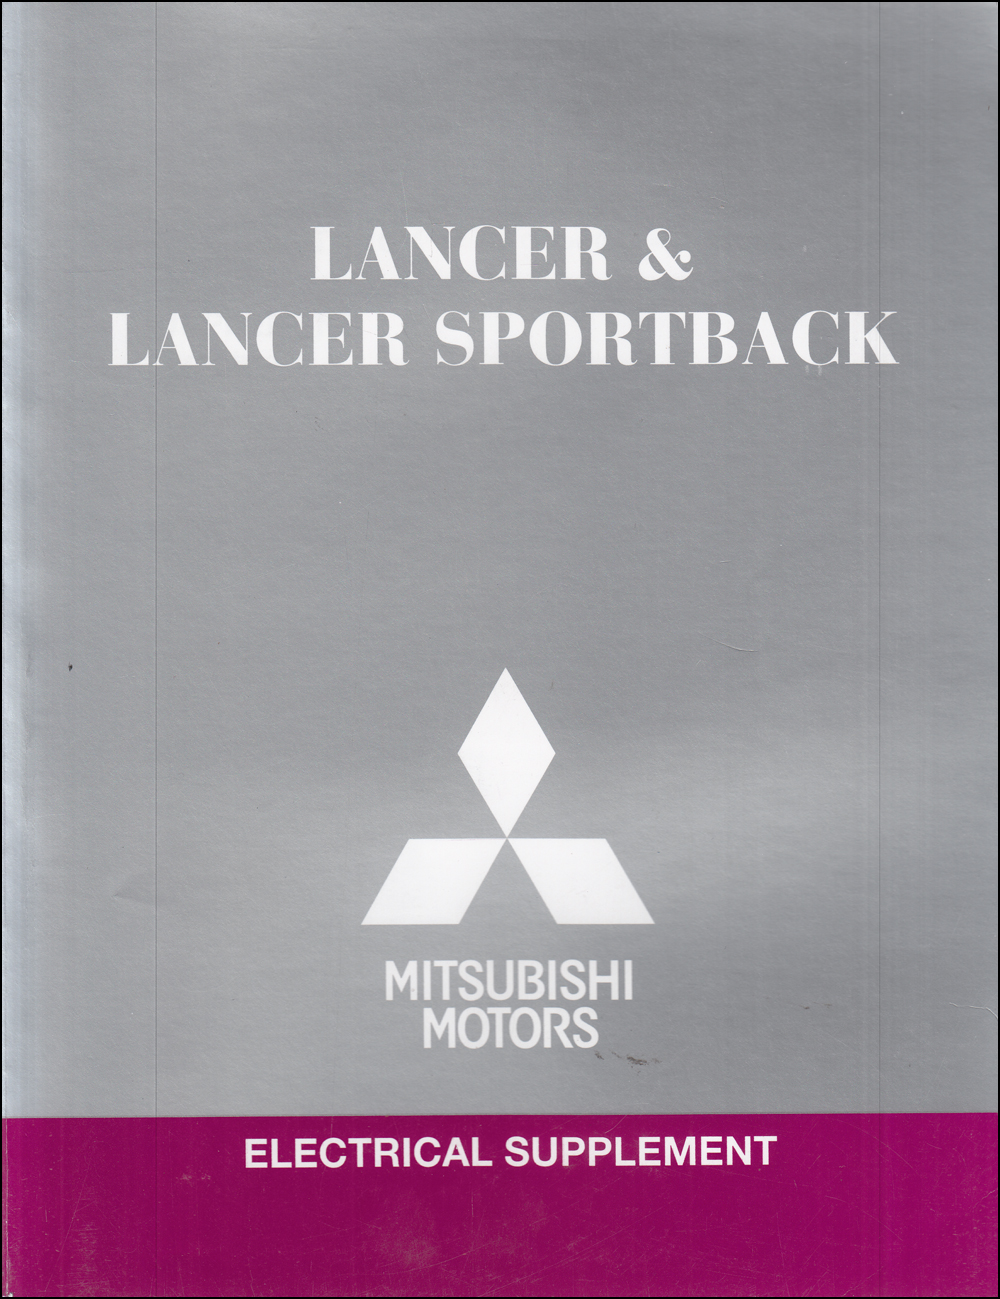 2014 Mitsubishi Lancer & Lancer Sportback Wiring Diagram Manual Original